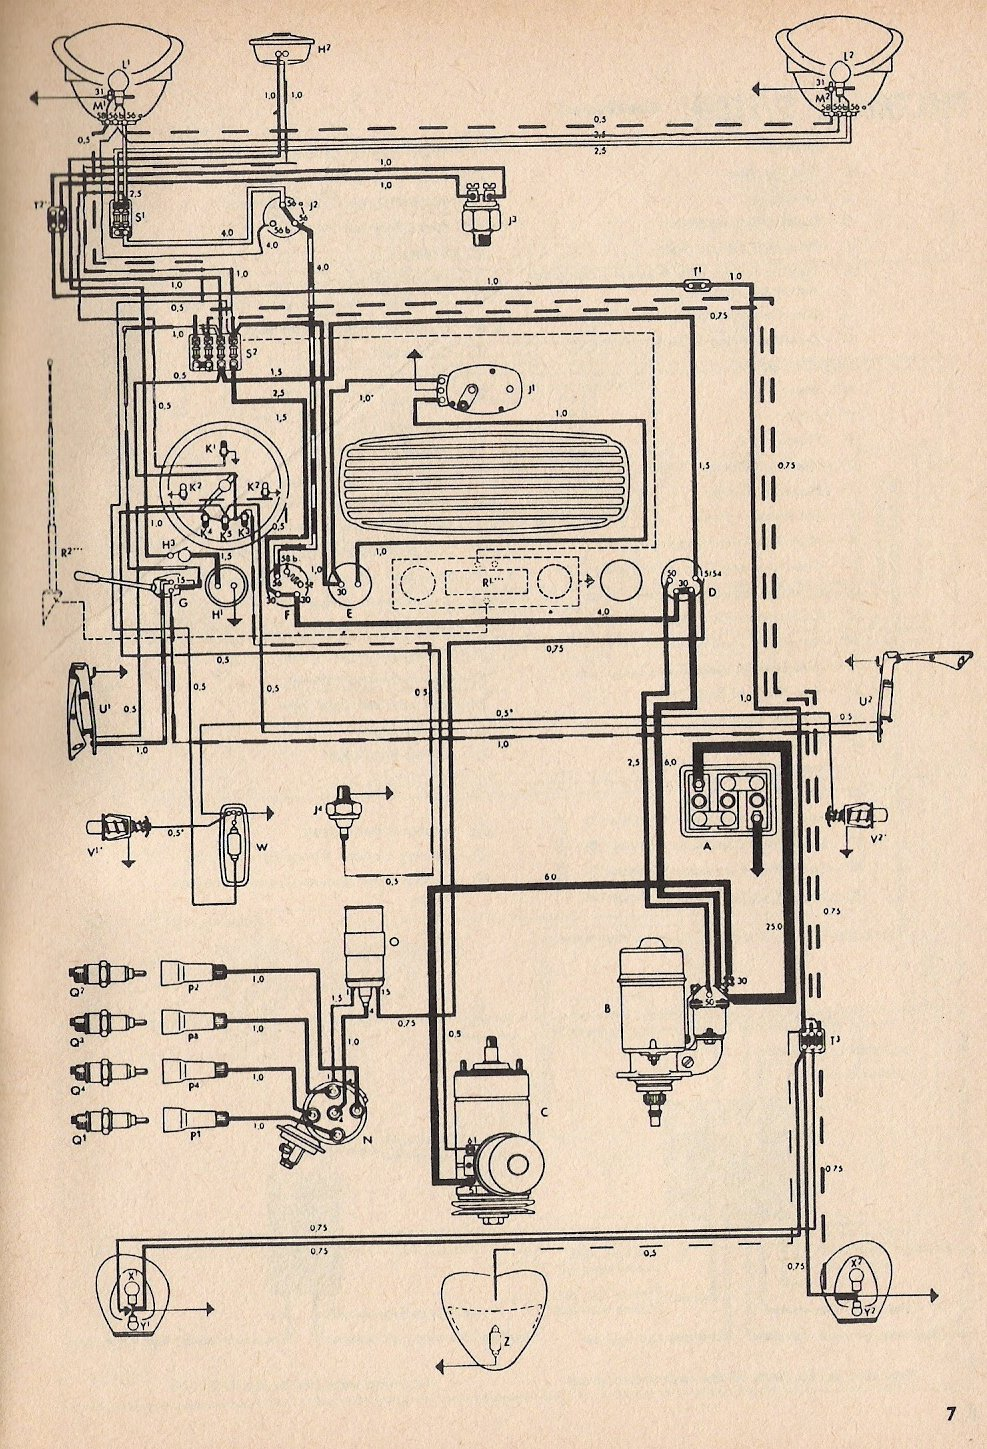 Bug on 1969 Corvette Wiring Diagram